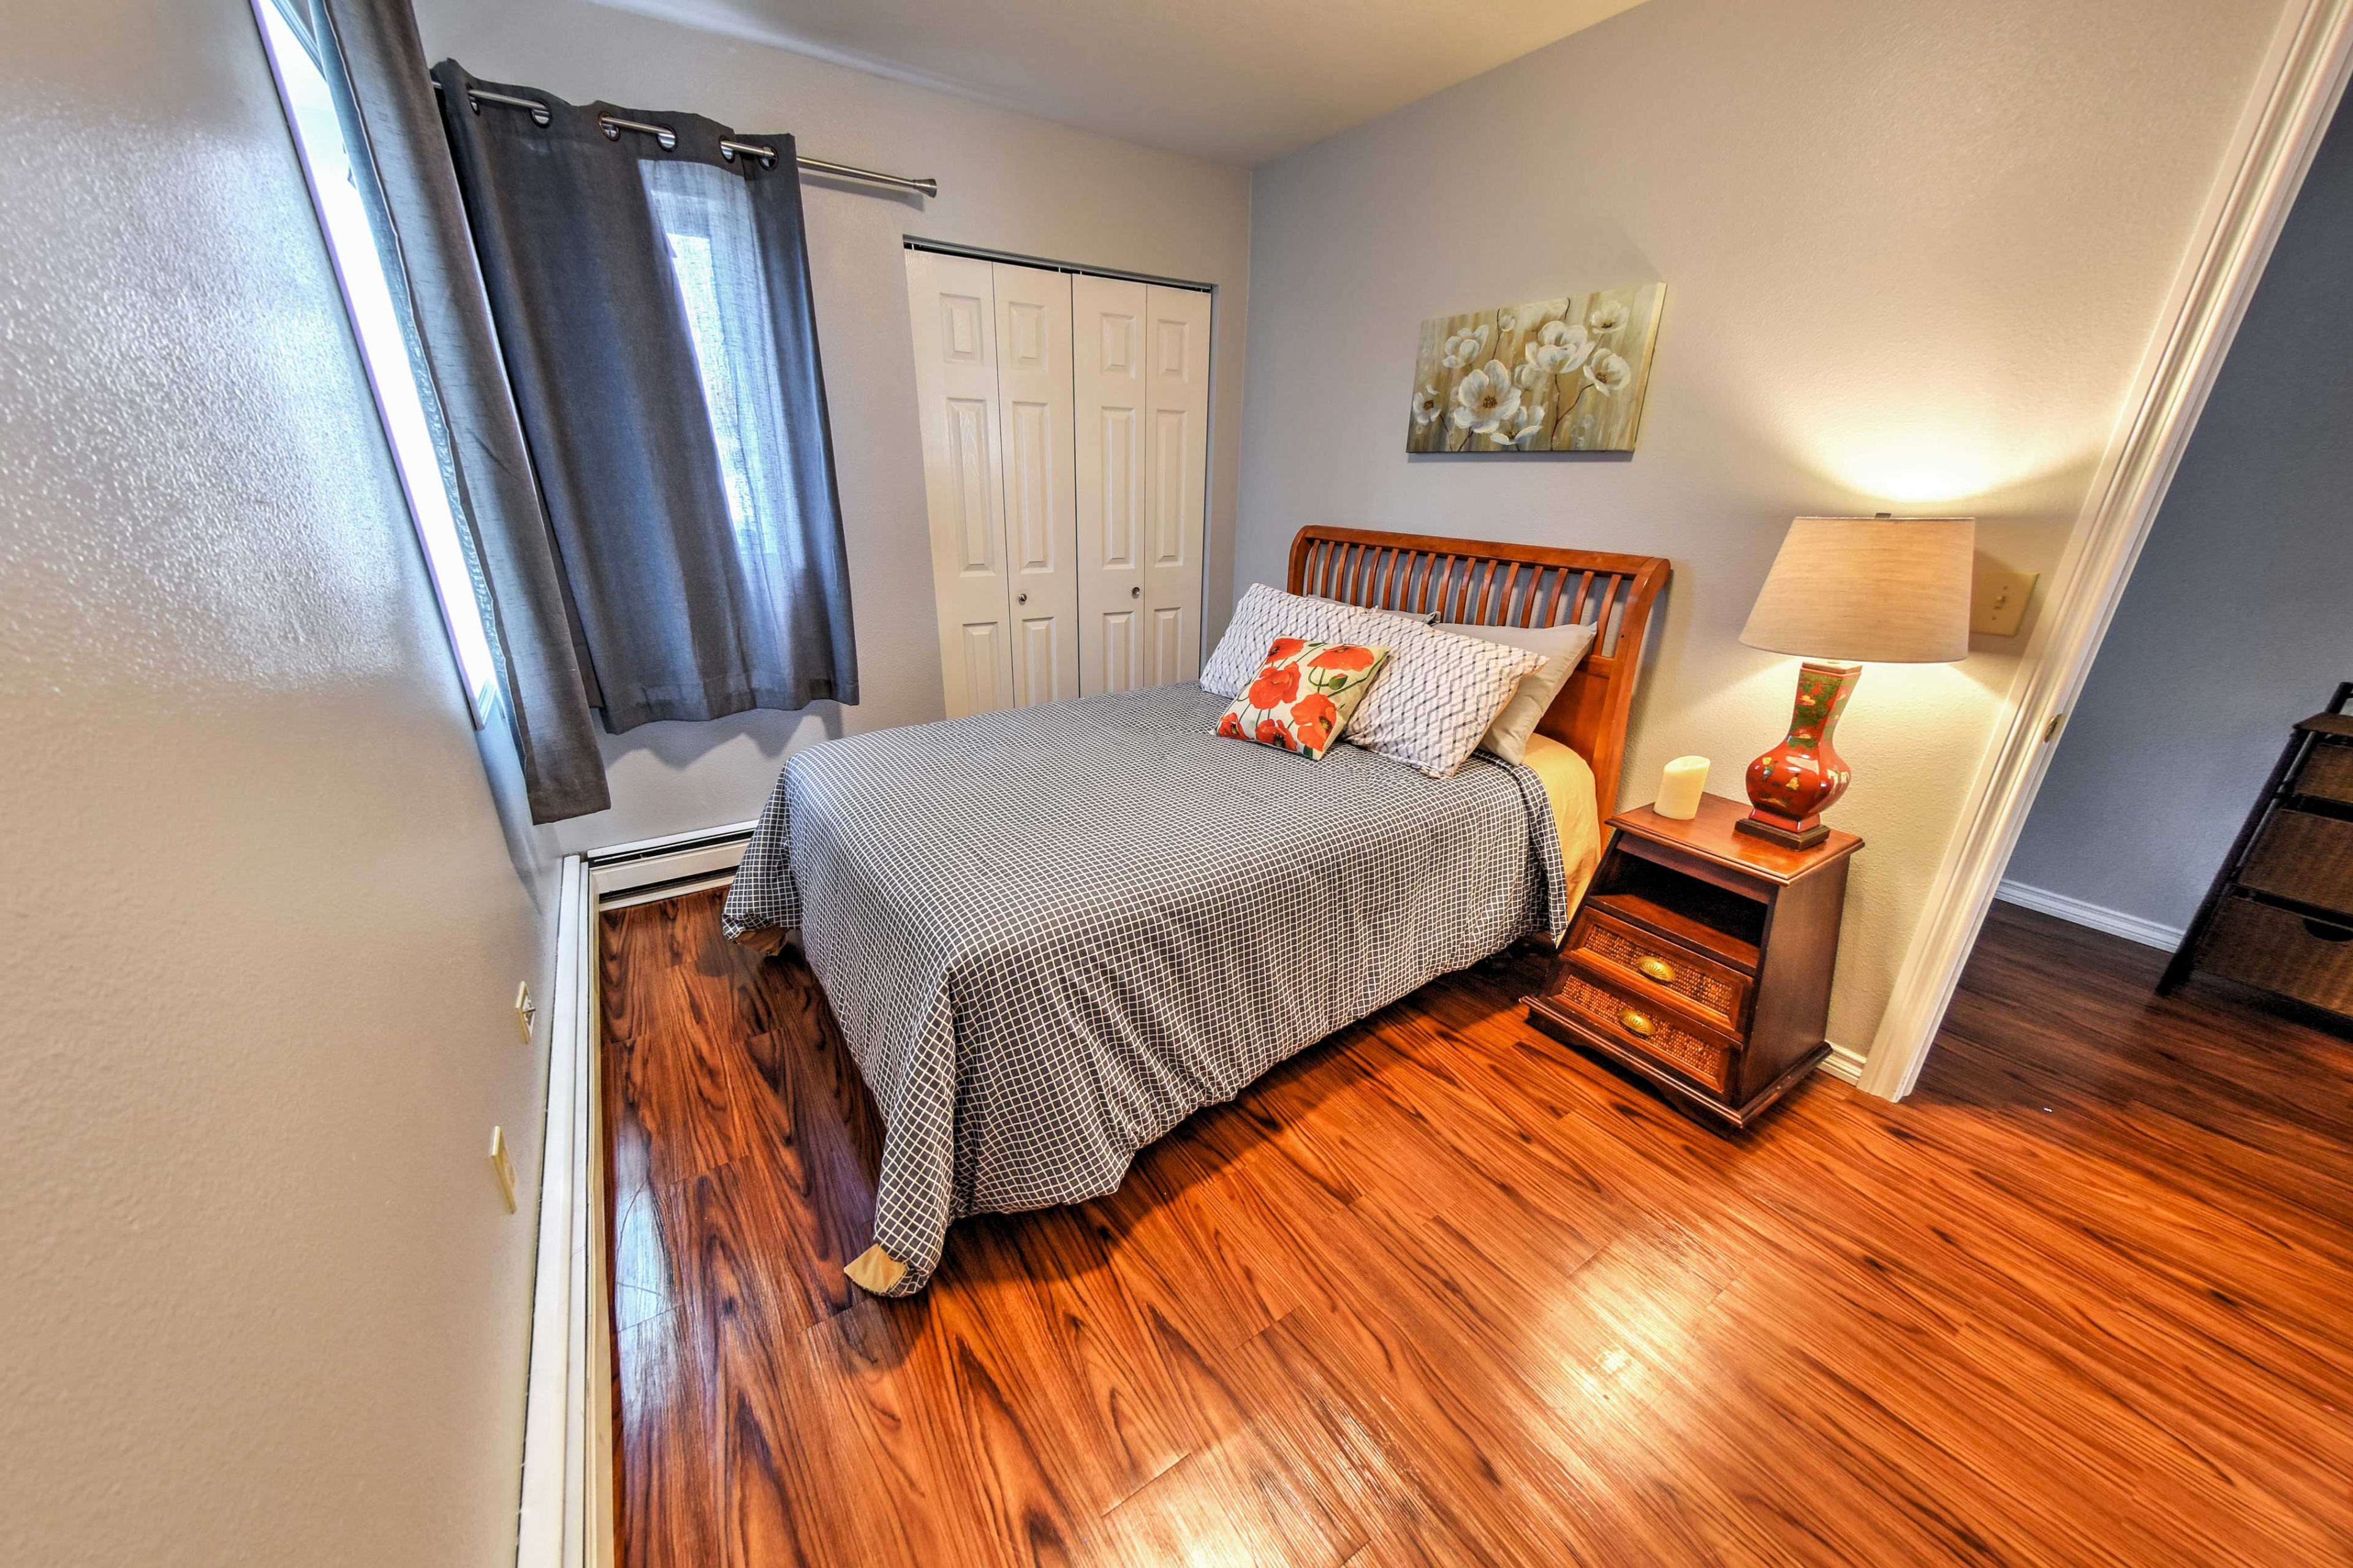 Guests are sure to sleep soundly in this cozy room.